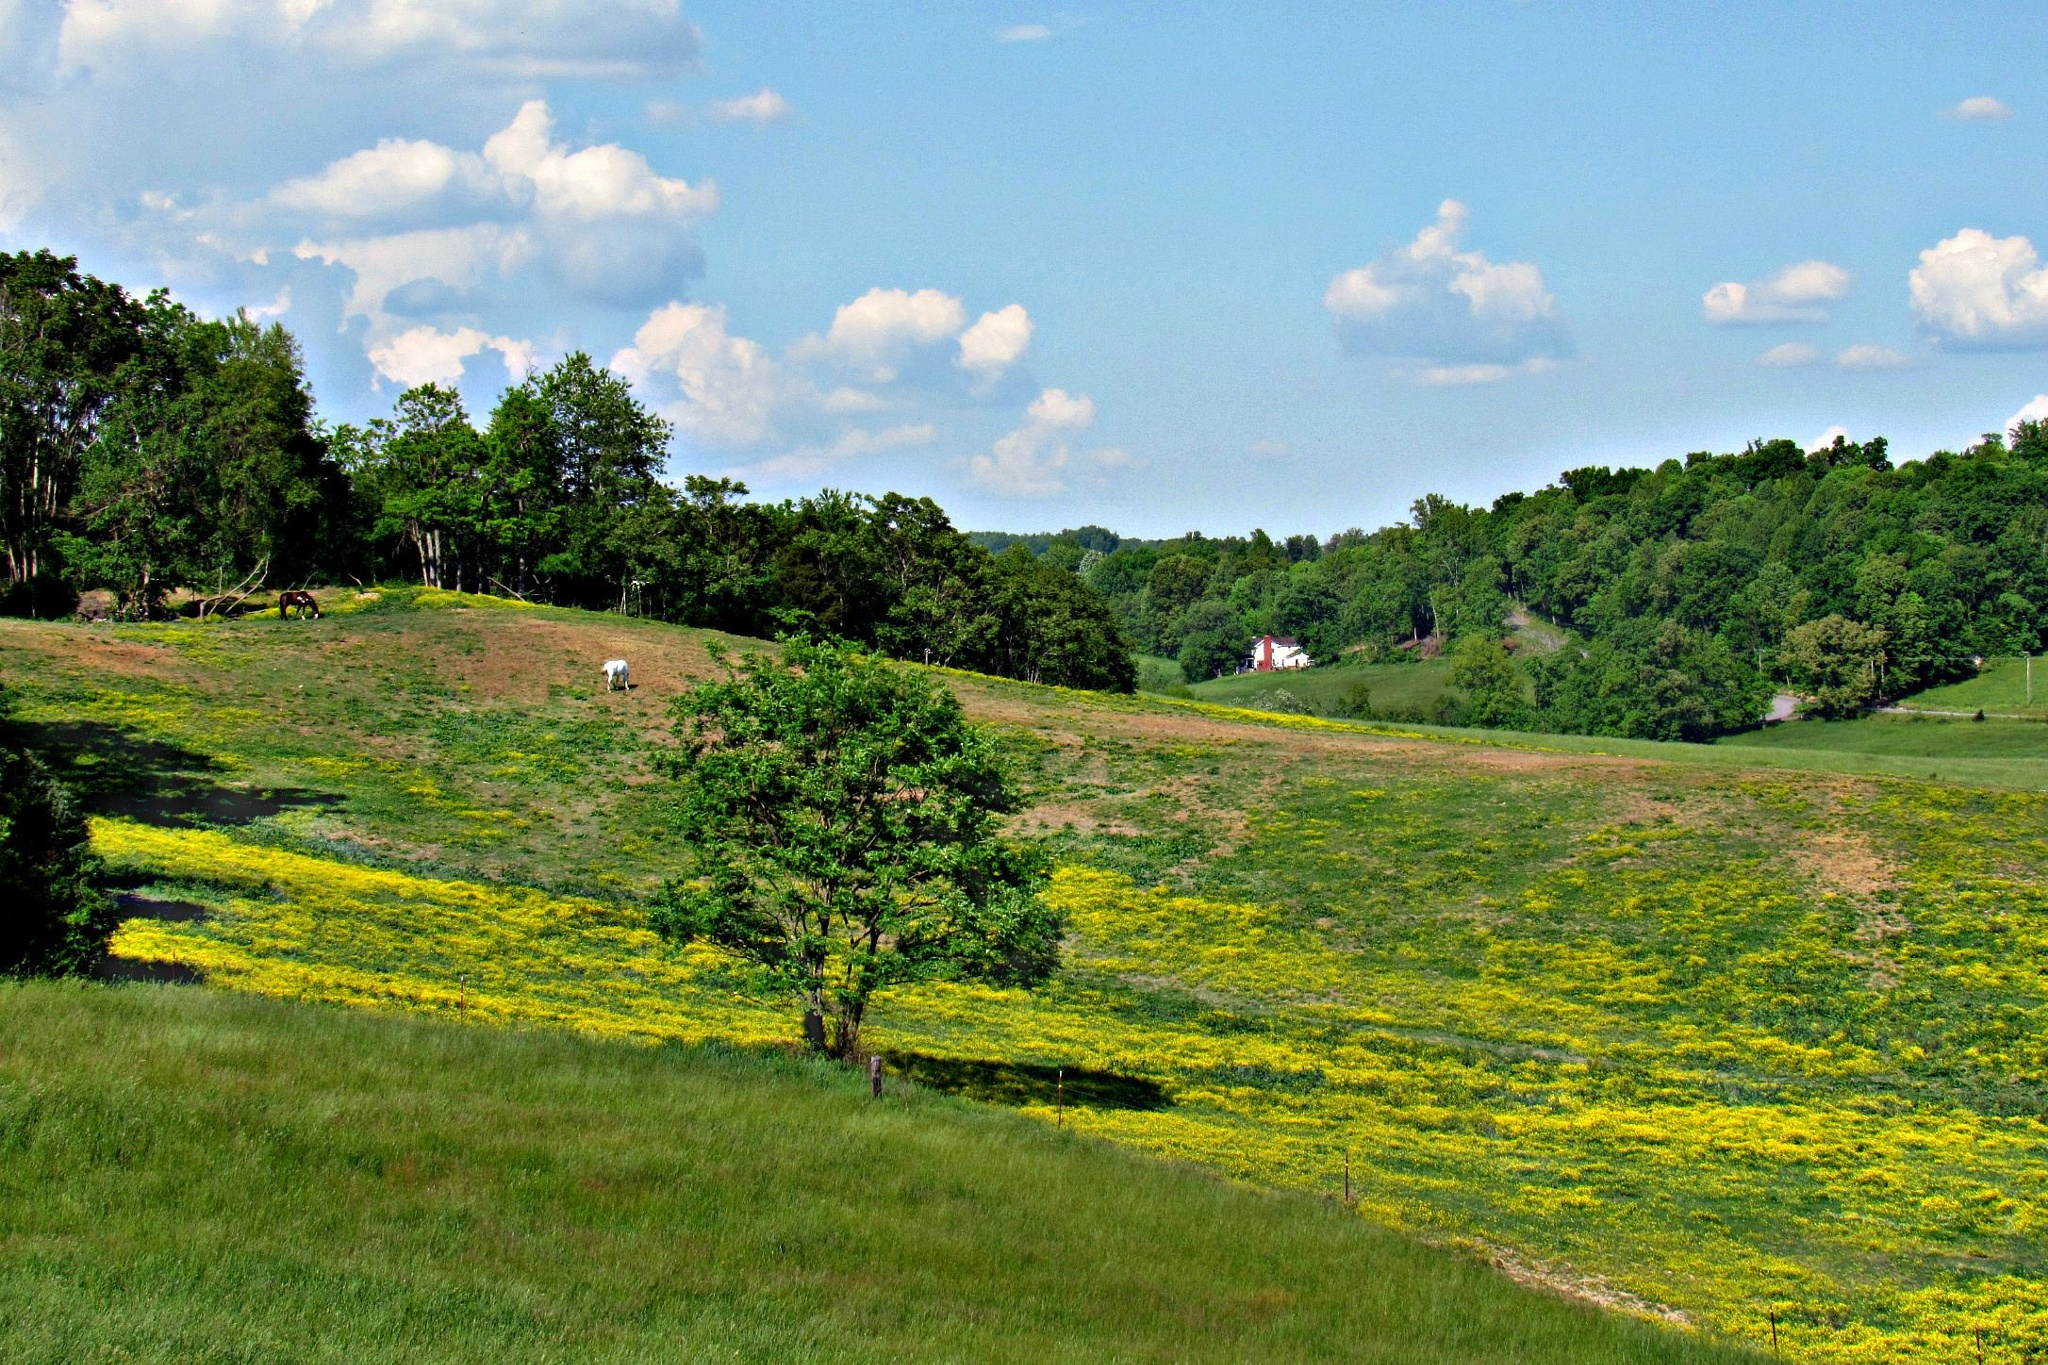 Field of Buttercups  by fergusoncindy33